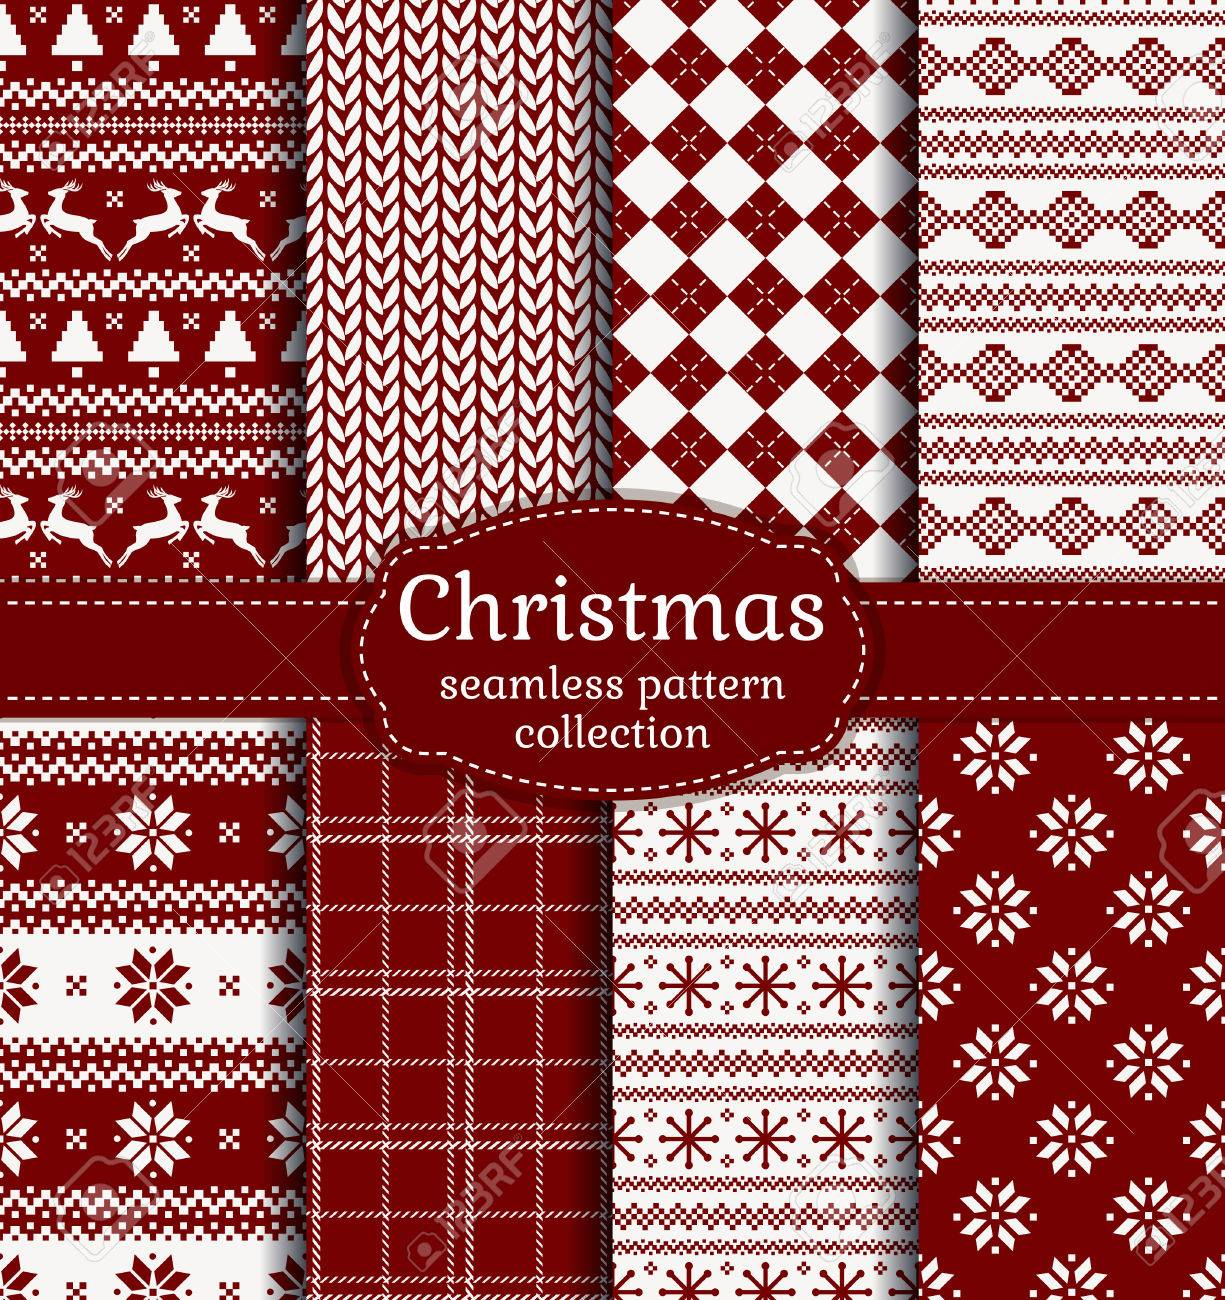 Pics photos merry christmas argyle twitter backgrounds - Merry Christmas And Happy New Year Set Of Red And White Seamless Backgrounds For Winter